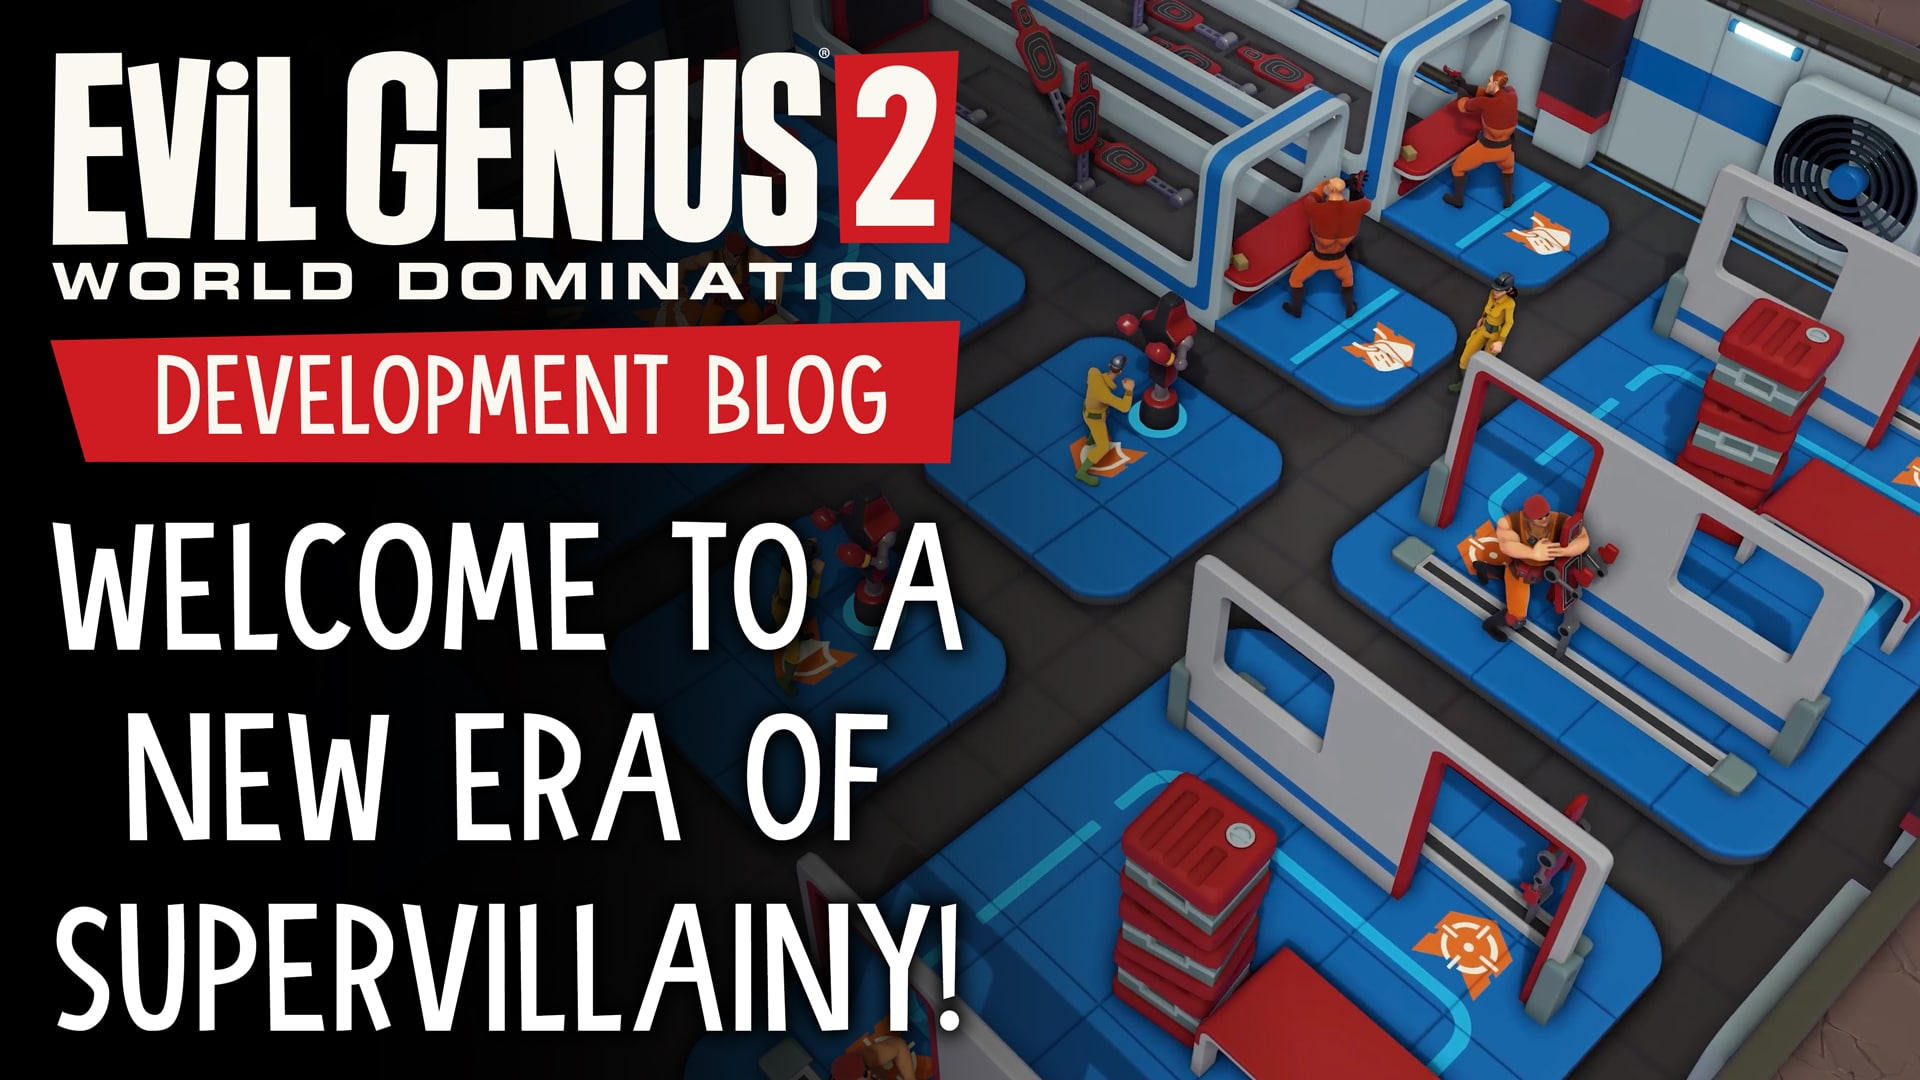 Development Blog – Welcome to a New Era of Supervillainy!